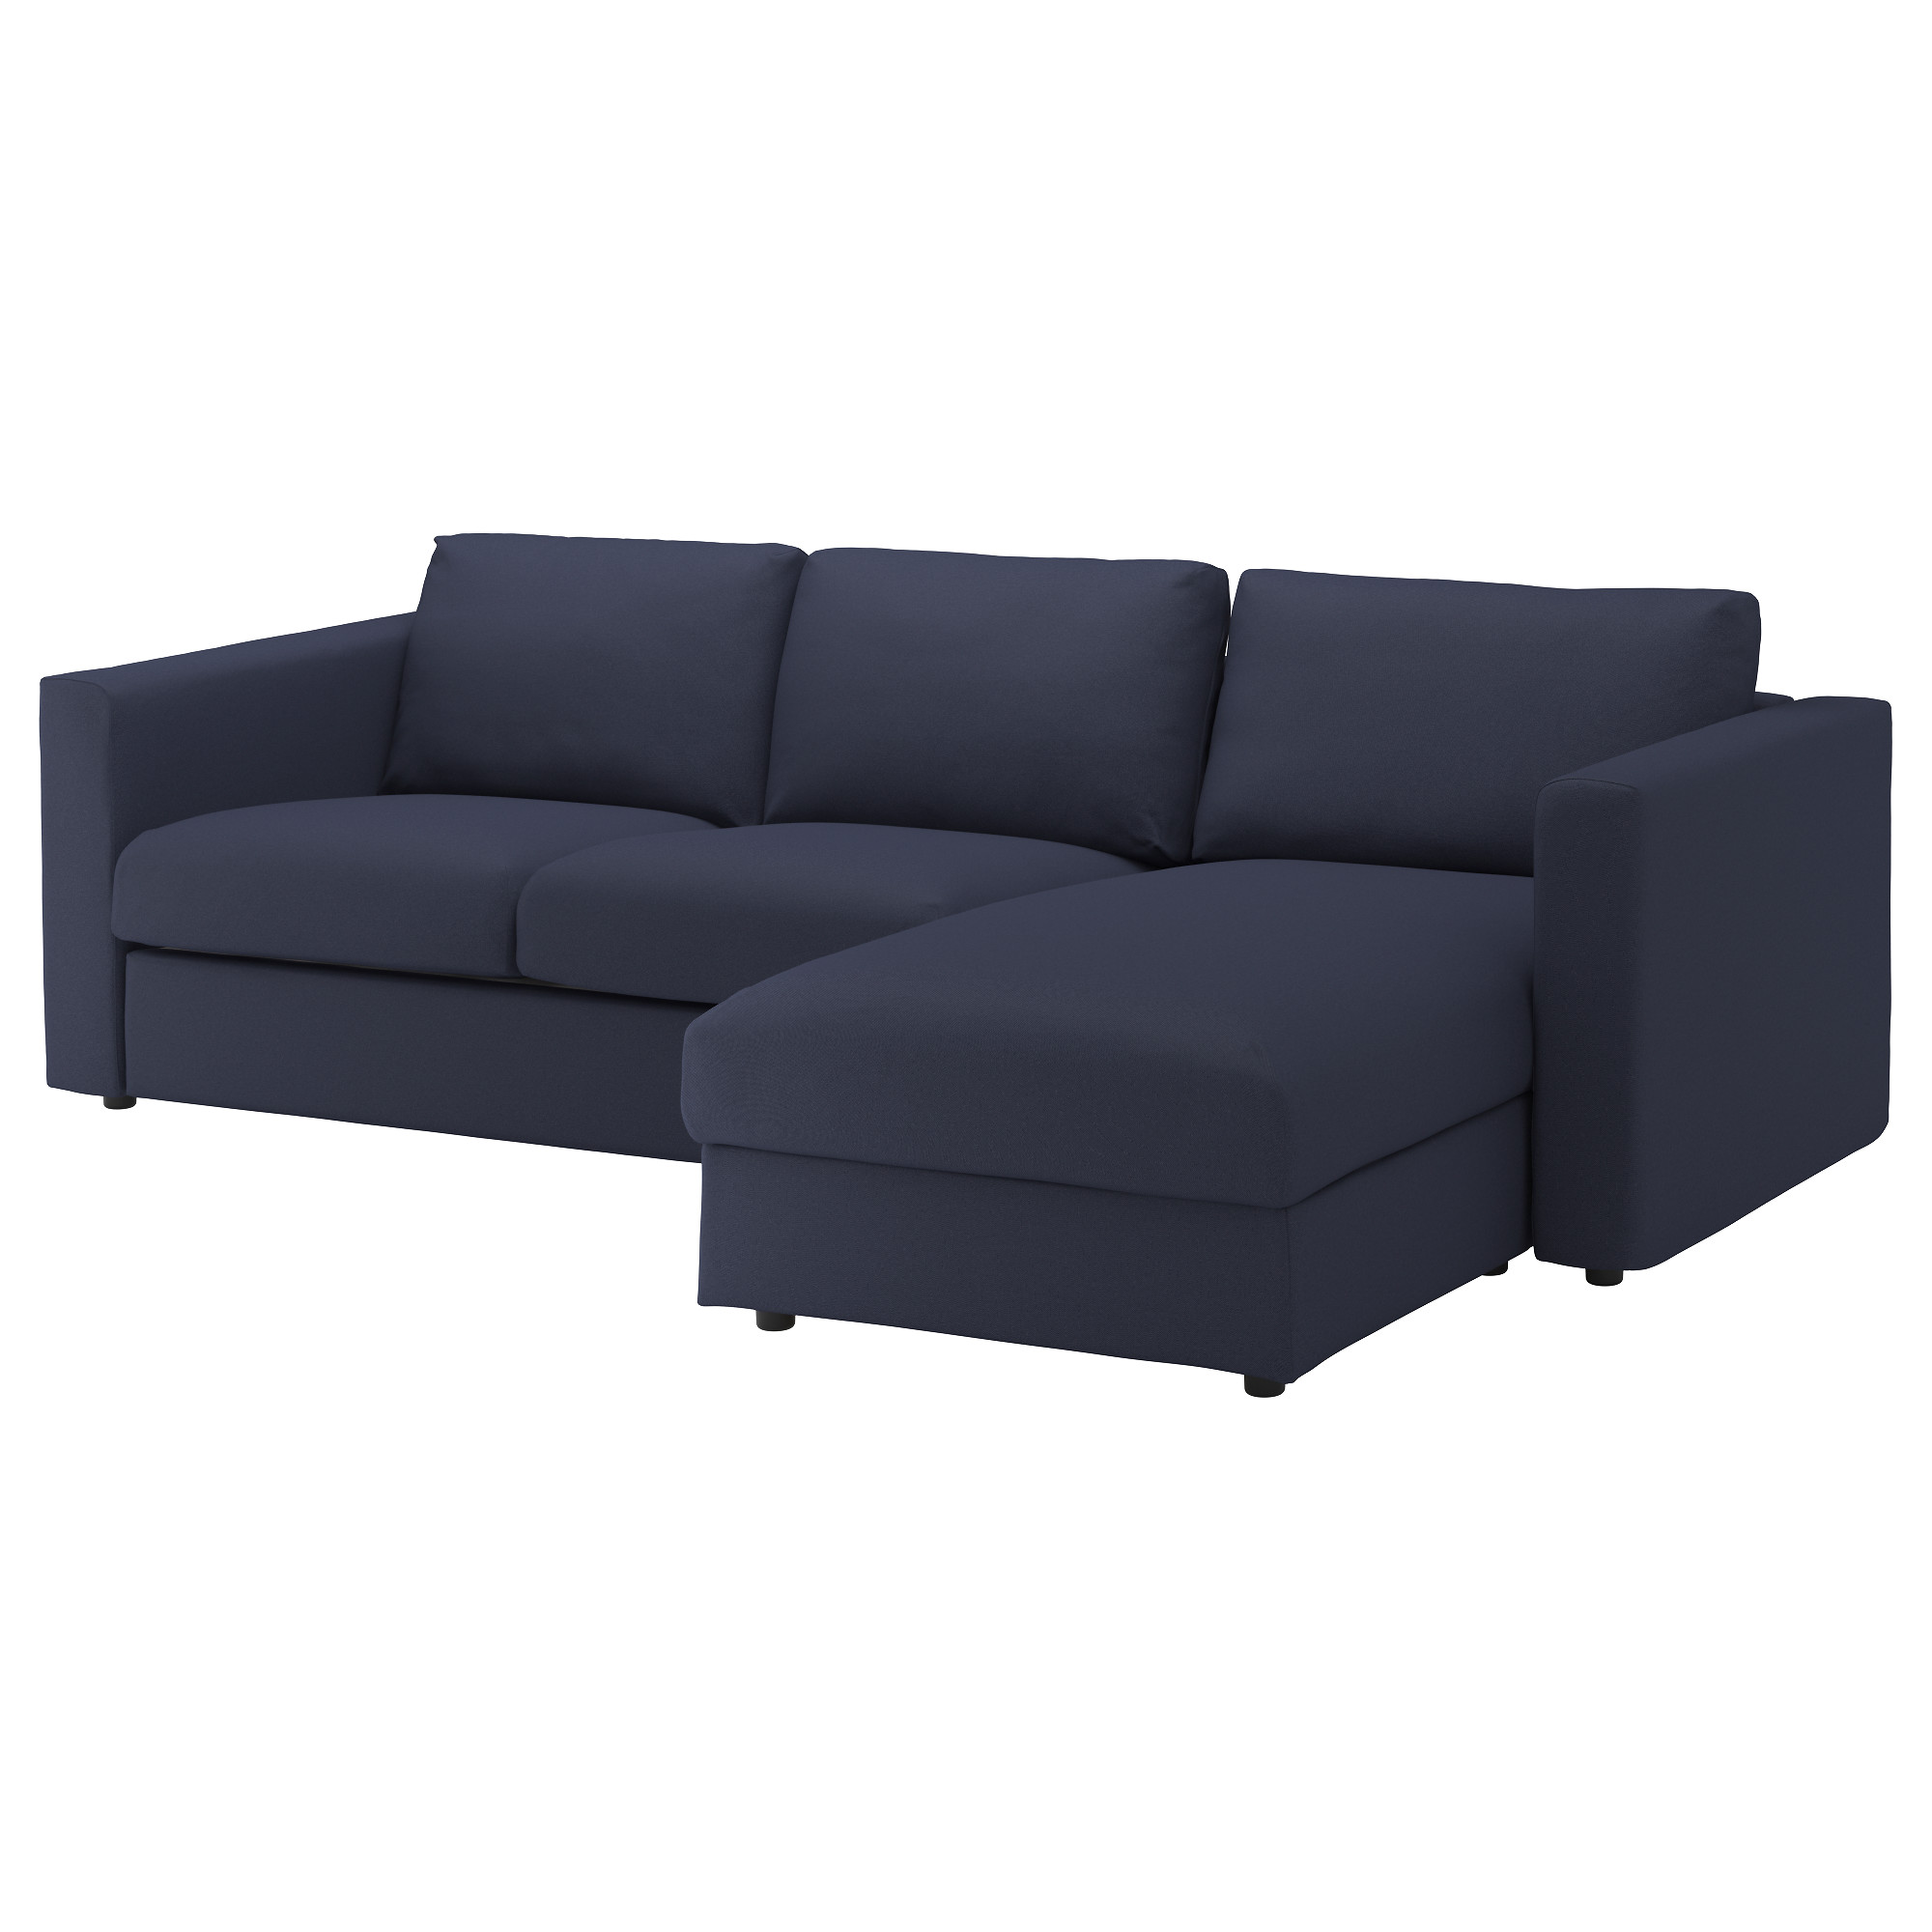 VIMLE sofa with chaise Orrsta black-blue Height including back cushions 31  sc 1 st  Ikea : sofa chaise bed - Sectionals, Sofas & Couches